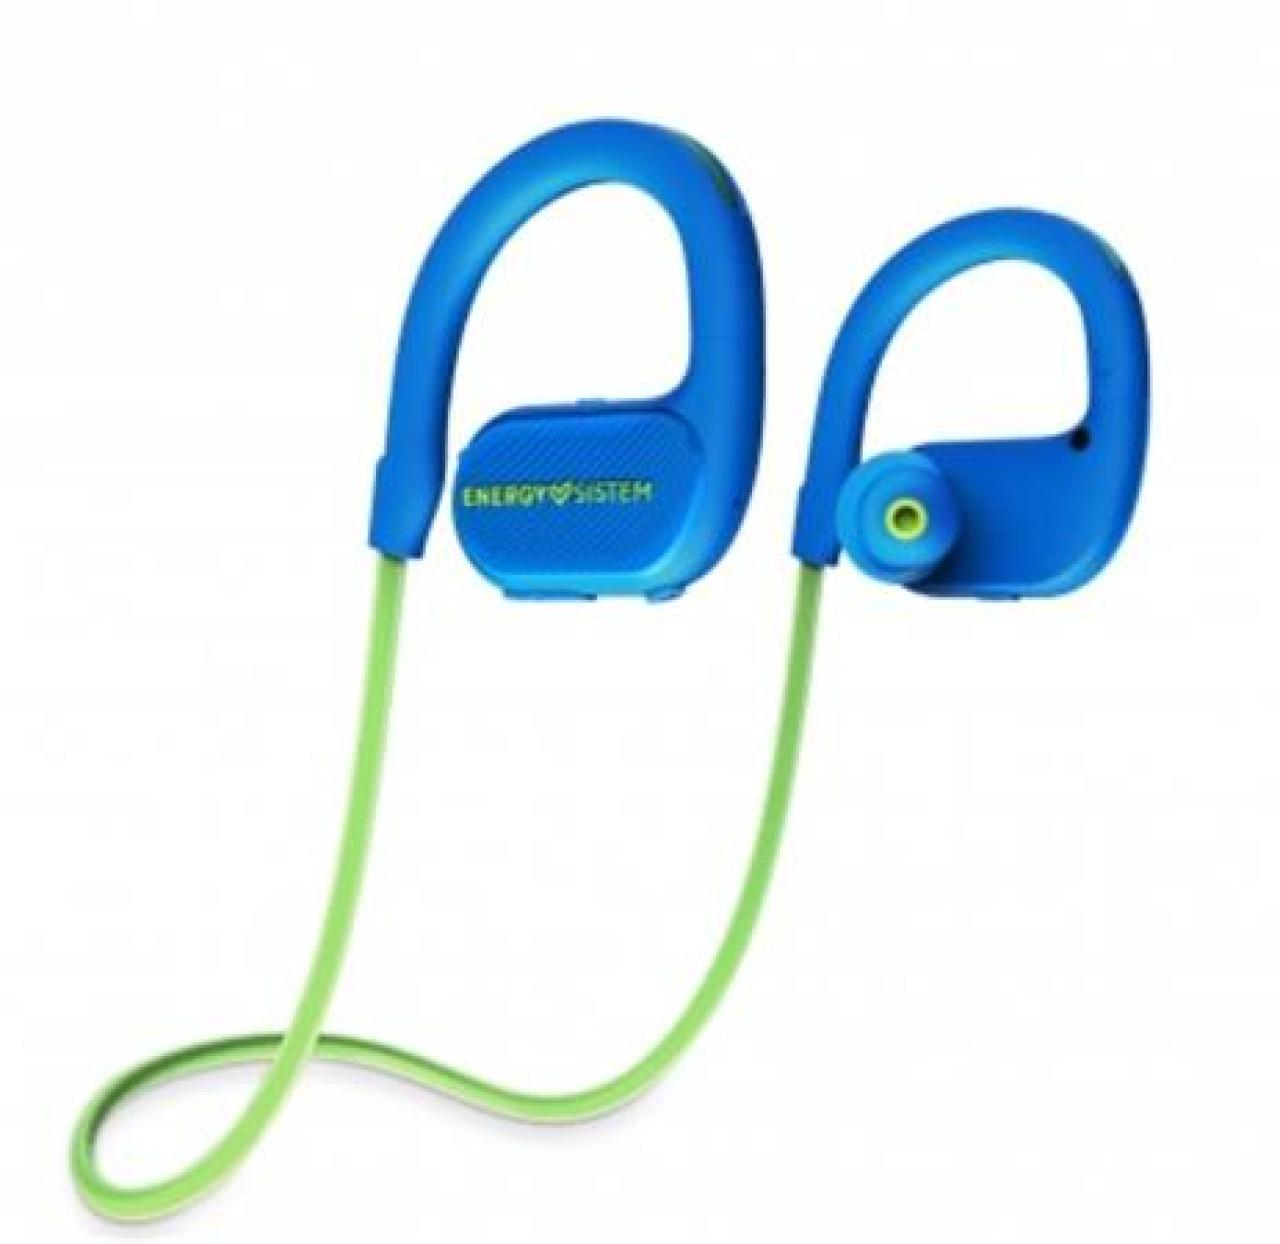 Energy Sistem Earphones BT Running 2